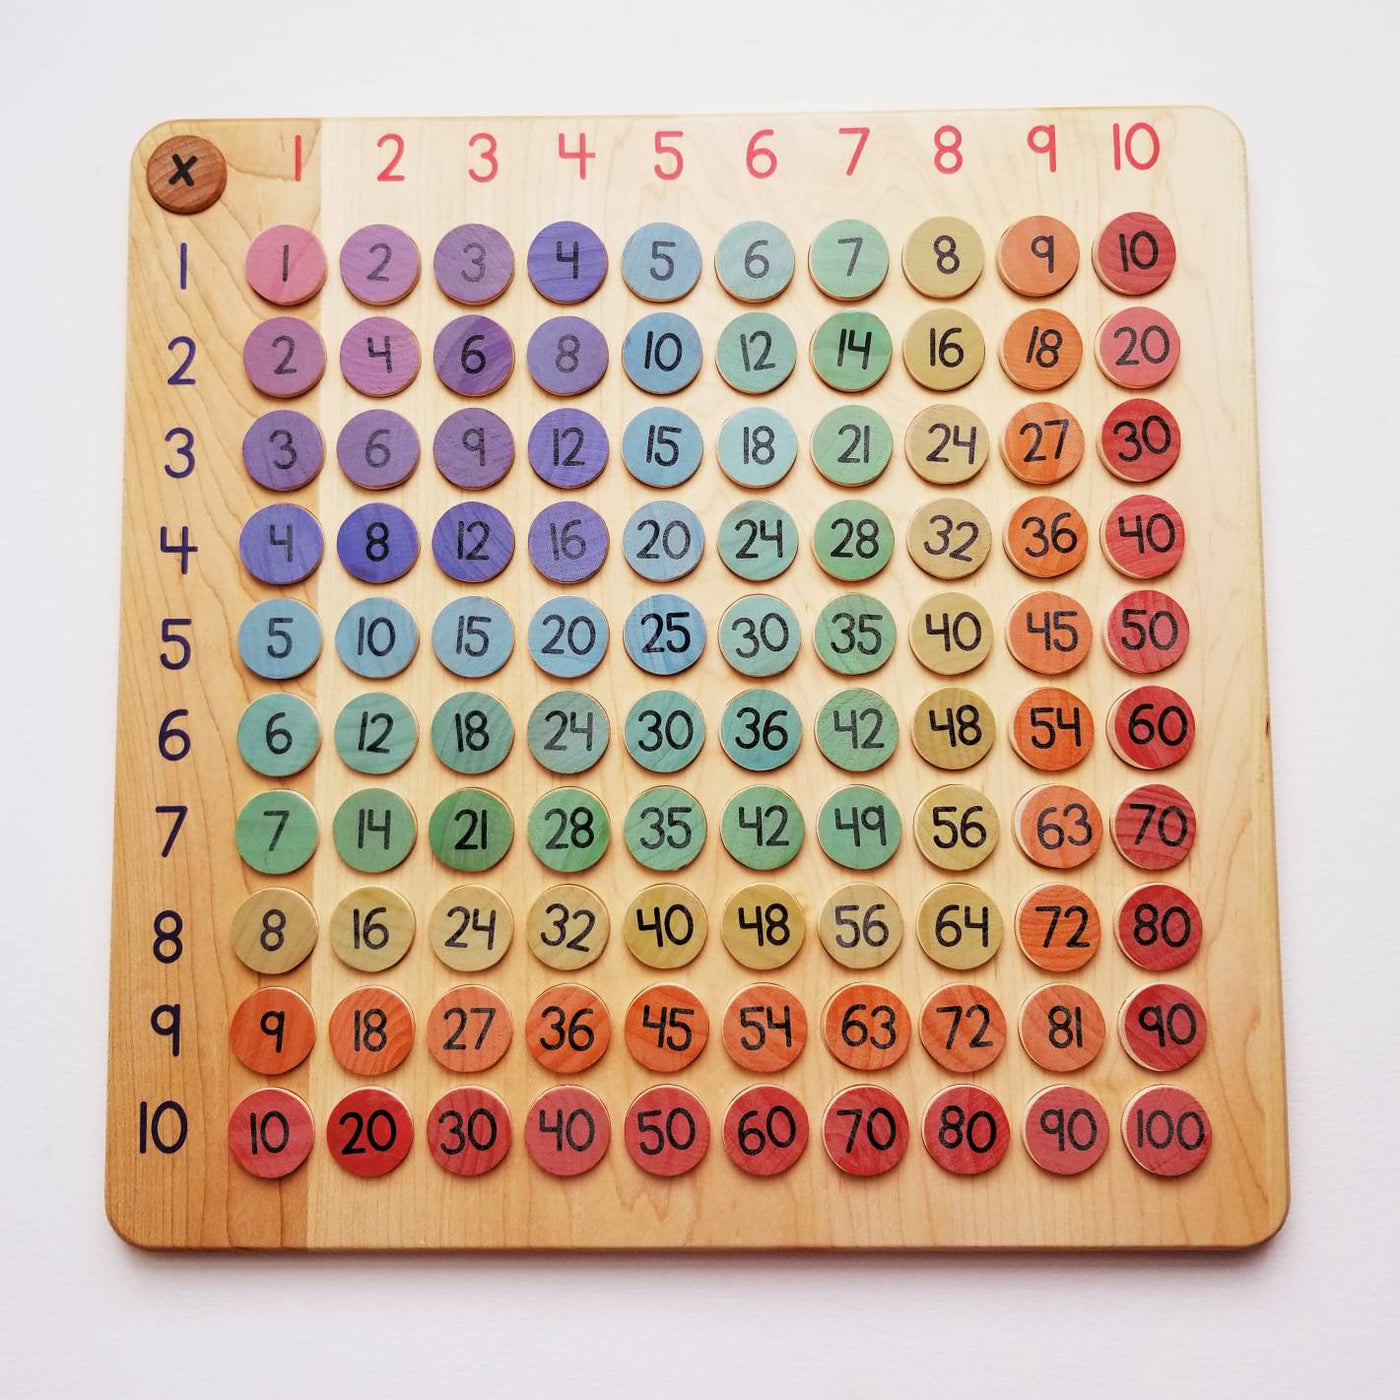 Arithmetic board - multiplication board - math manipulative - Montessori materials - Waldorf math - educational toys